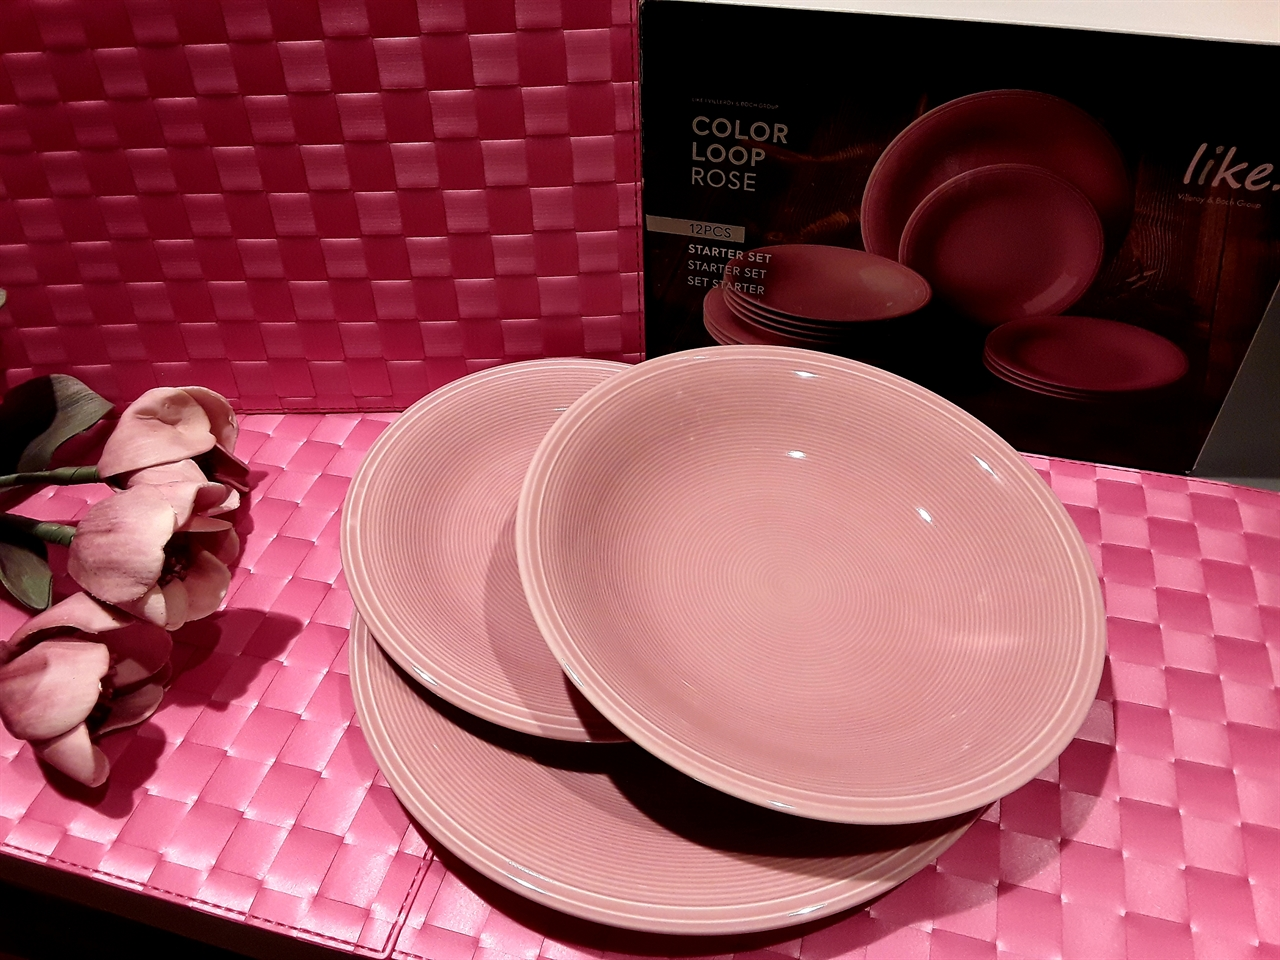 Villeroy & Boch mod. COLOR LOOP ROSE